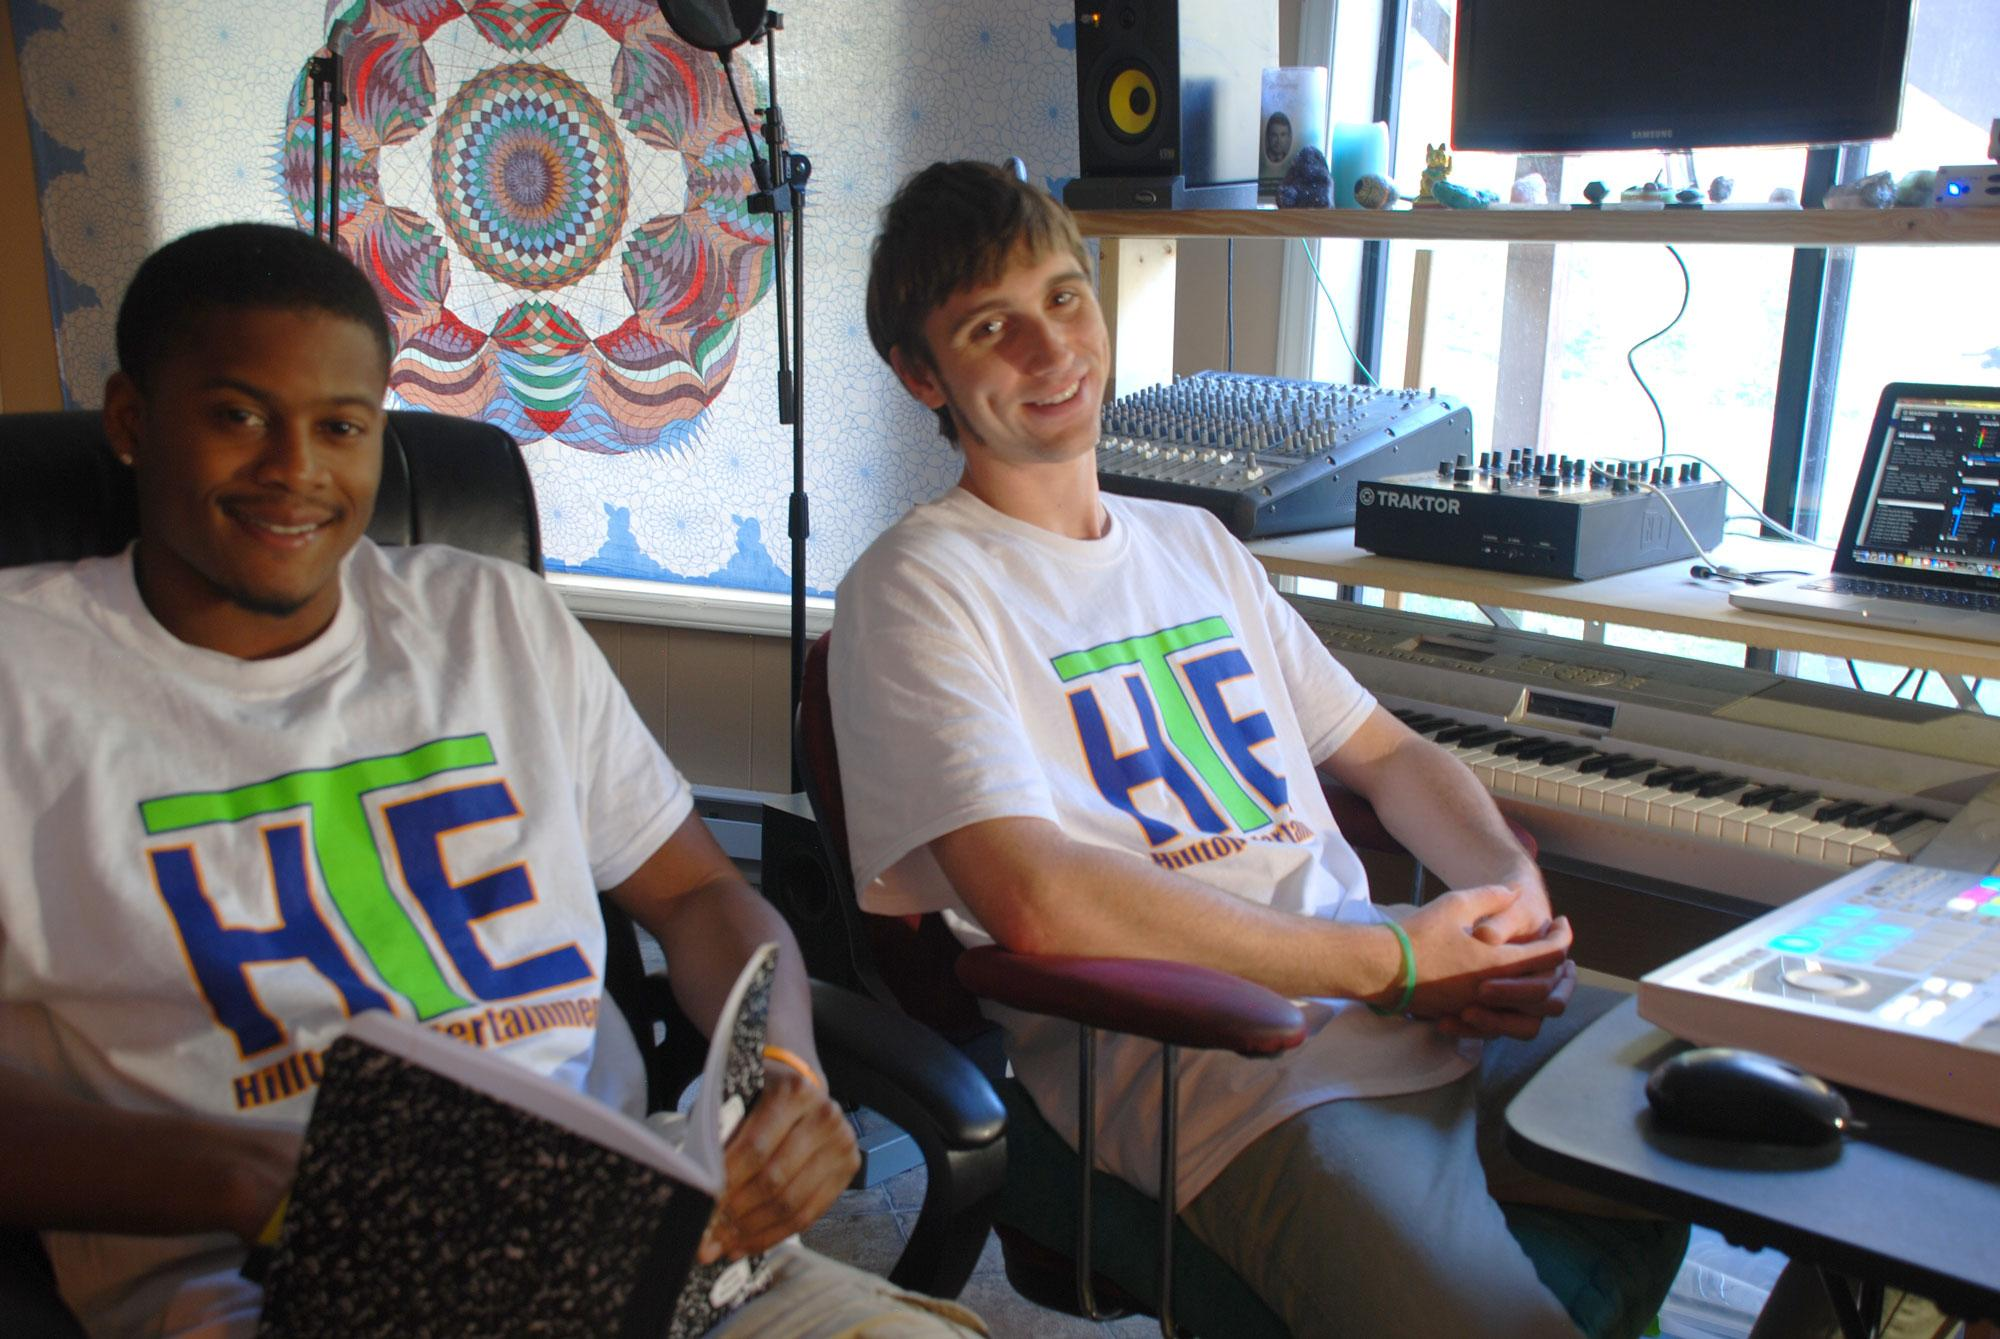 Matthew Helton (left) and Alex Reese (right) pose for a photo in the studio. Photo courtesy of Hilltop Entertainment